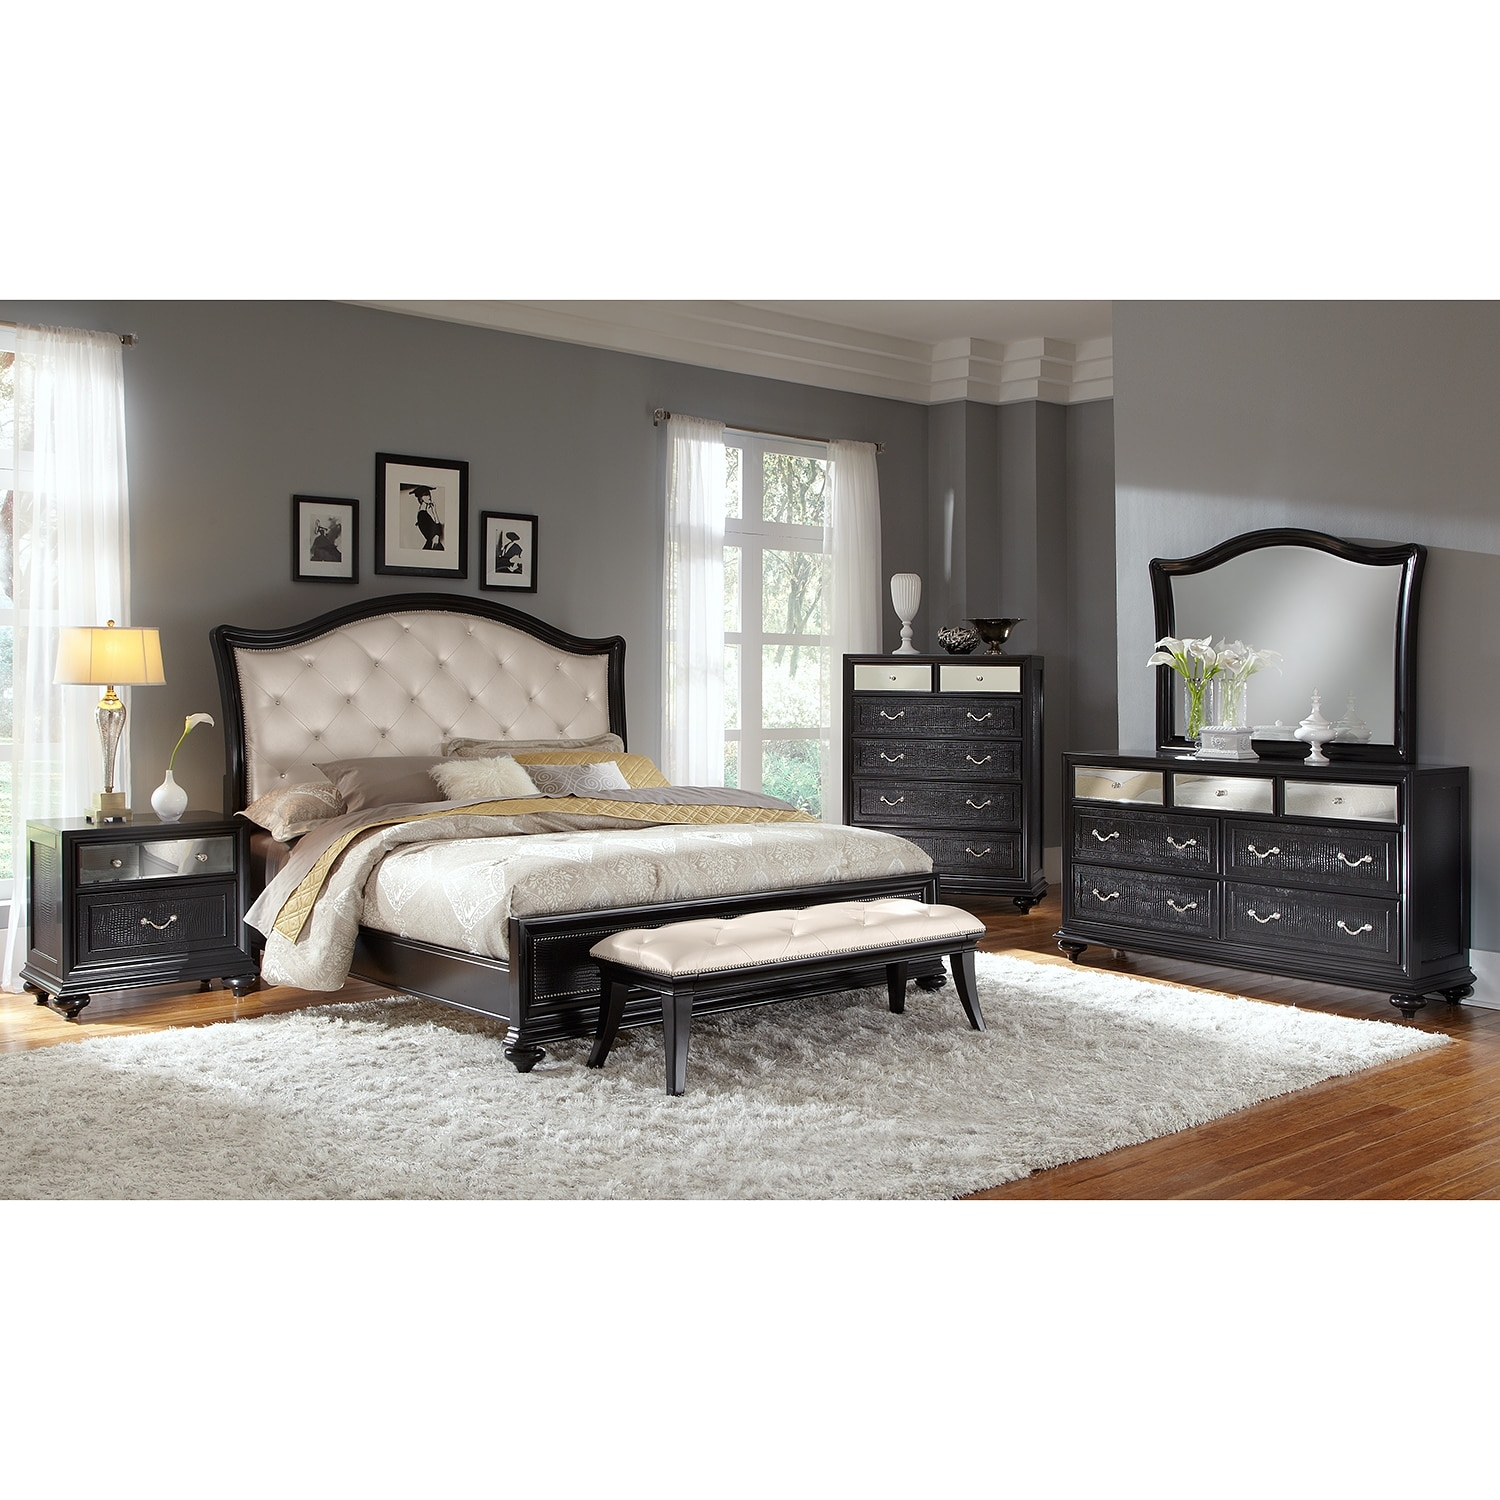 Marilyn queen bed value city furniture for Bed and bedroom sets